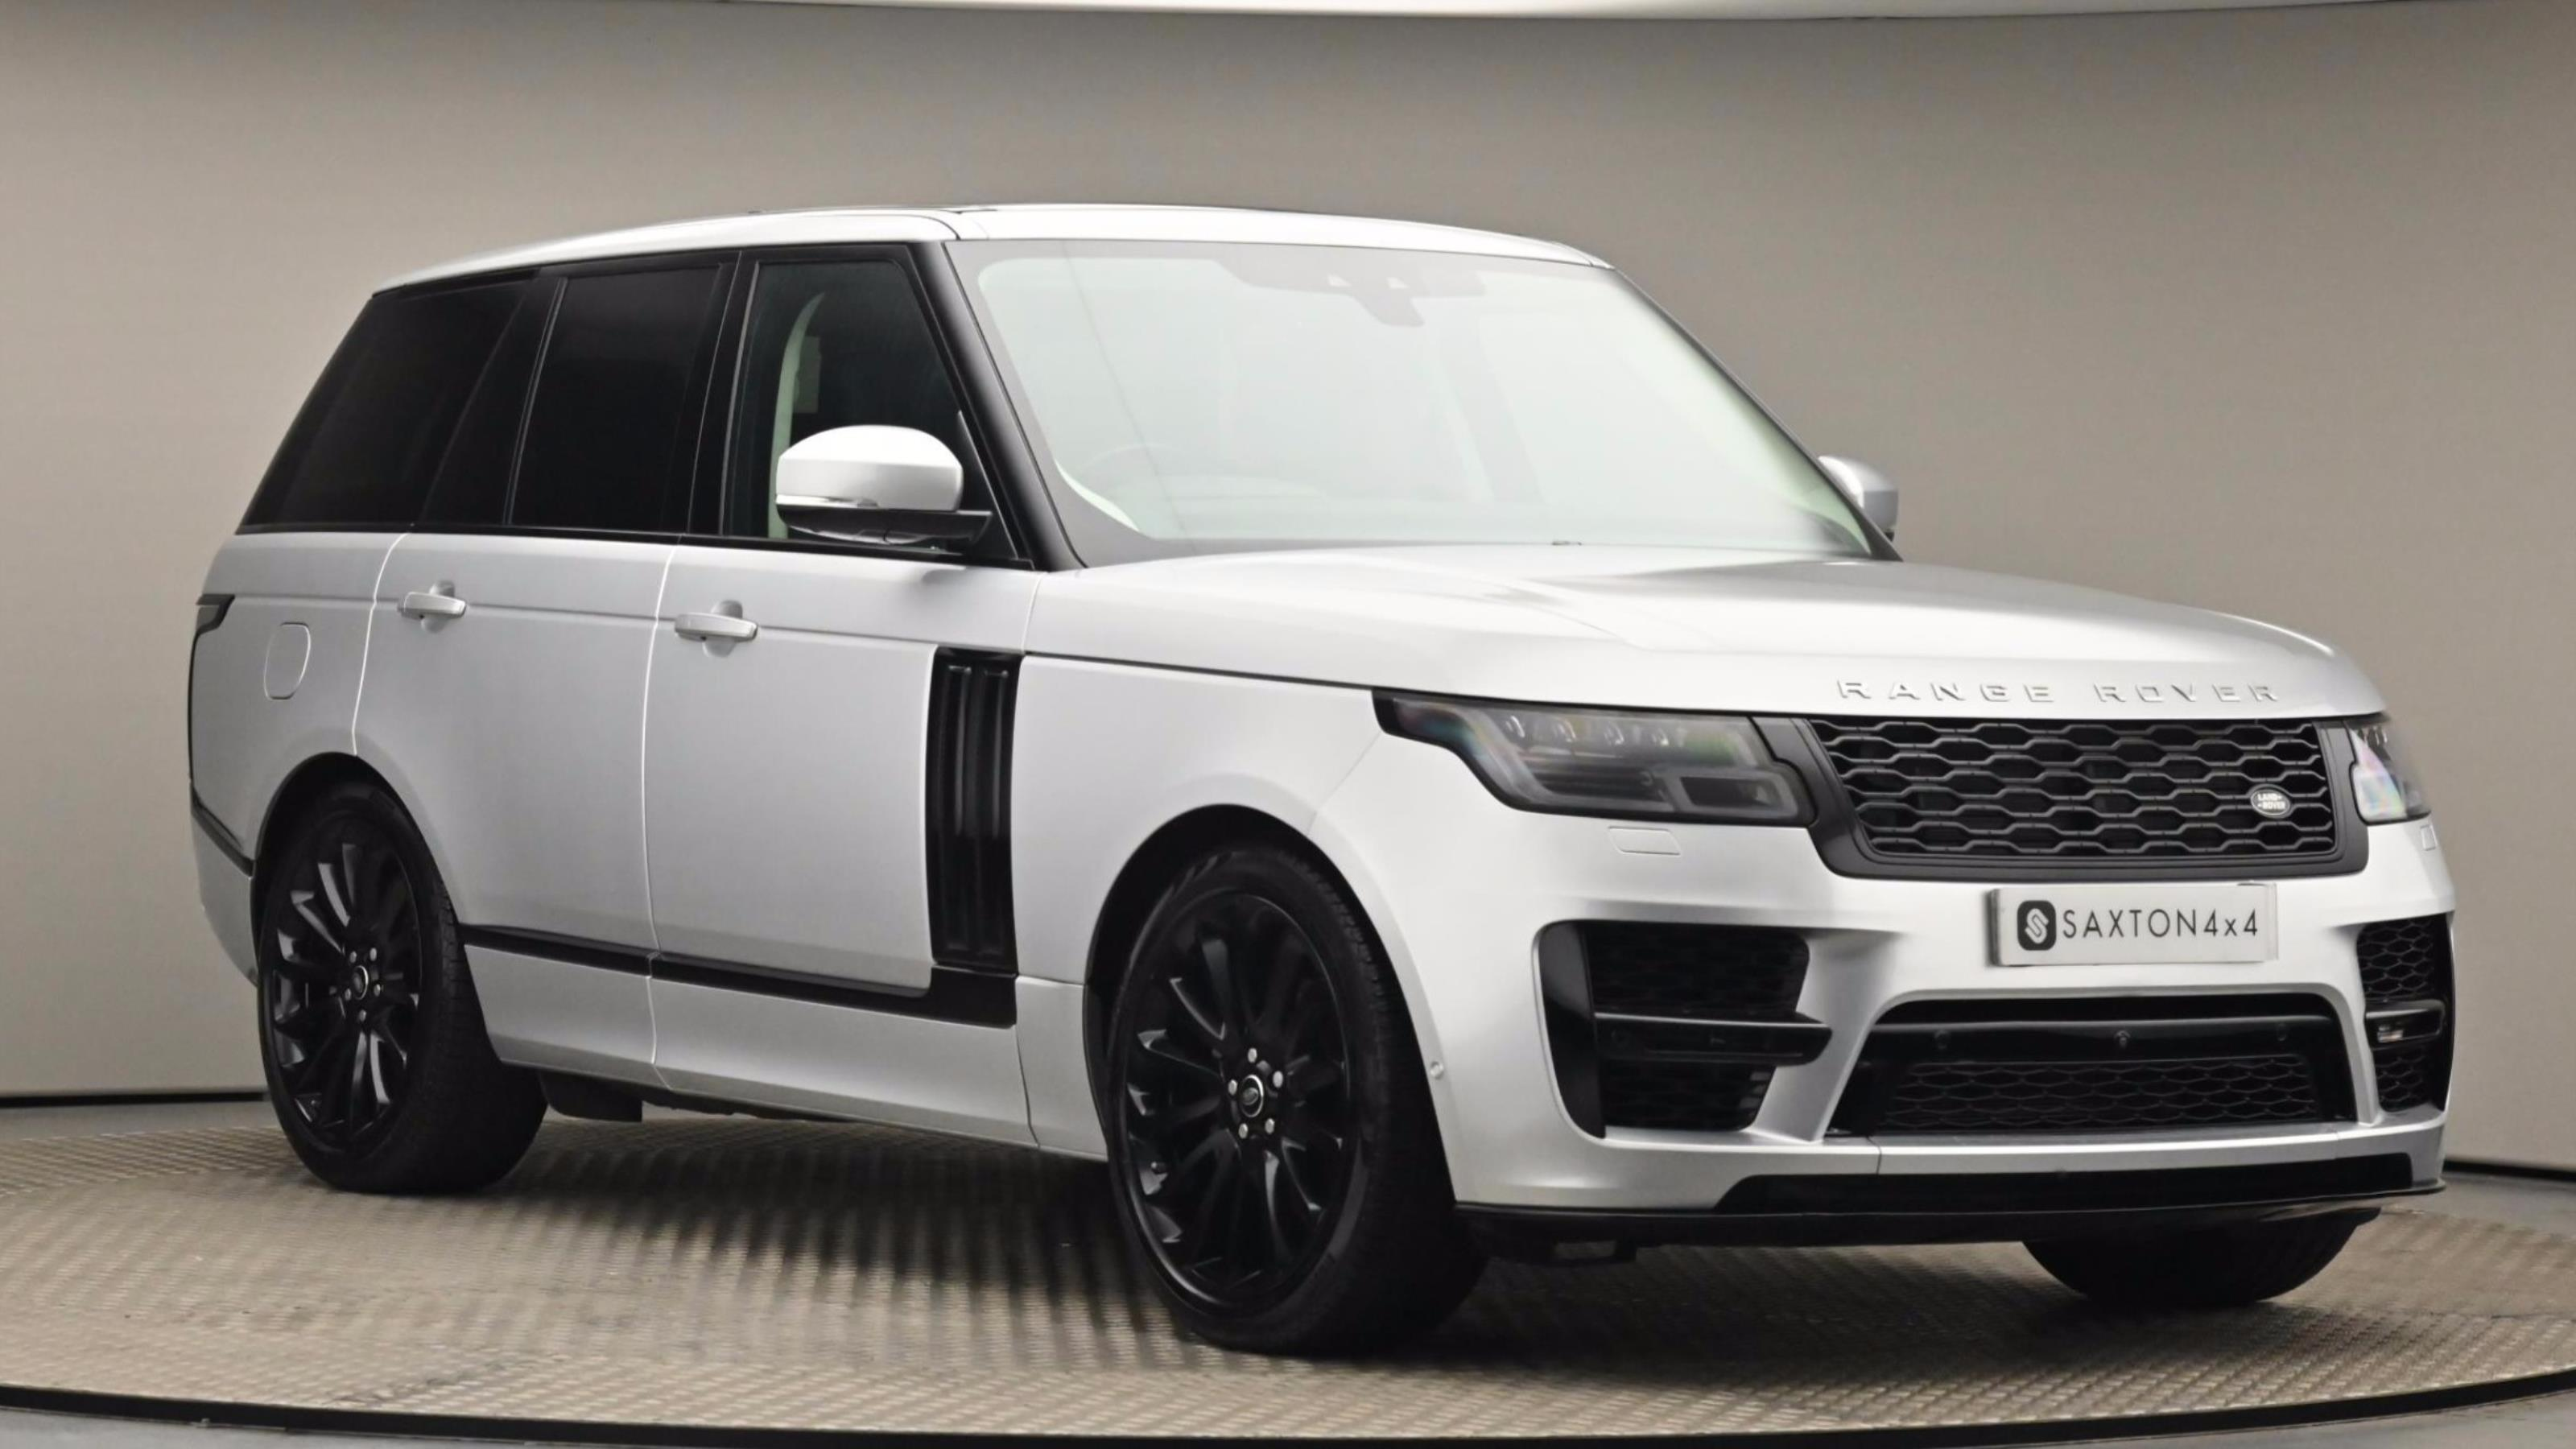 Used 2018 Land Rover RANGE ROVER 3.0 TDV6 Autobiography 4dr Auto SILVER at Saxton4x4